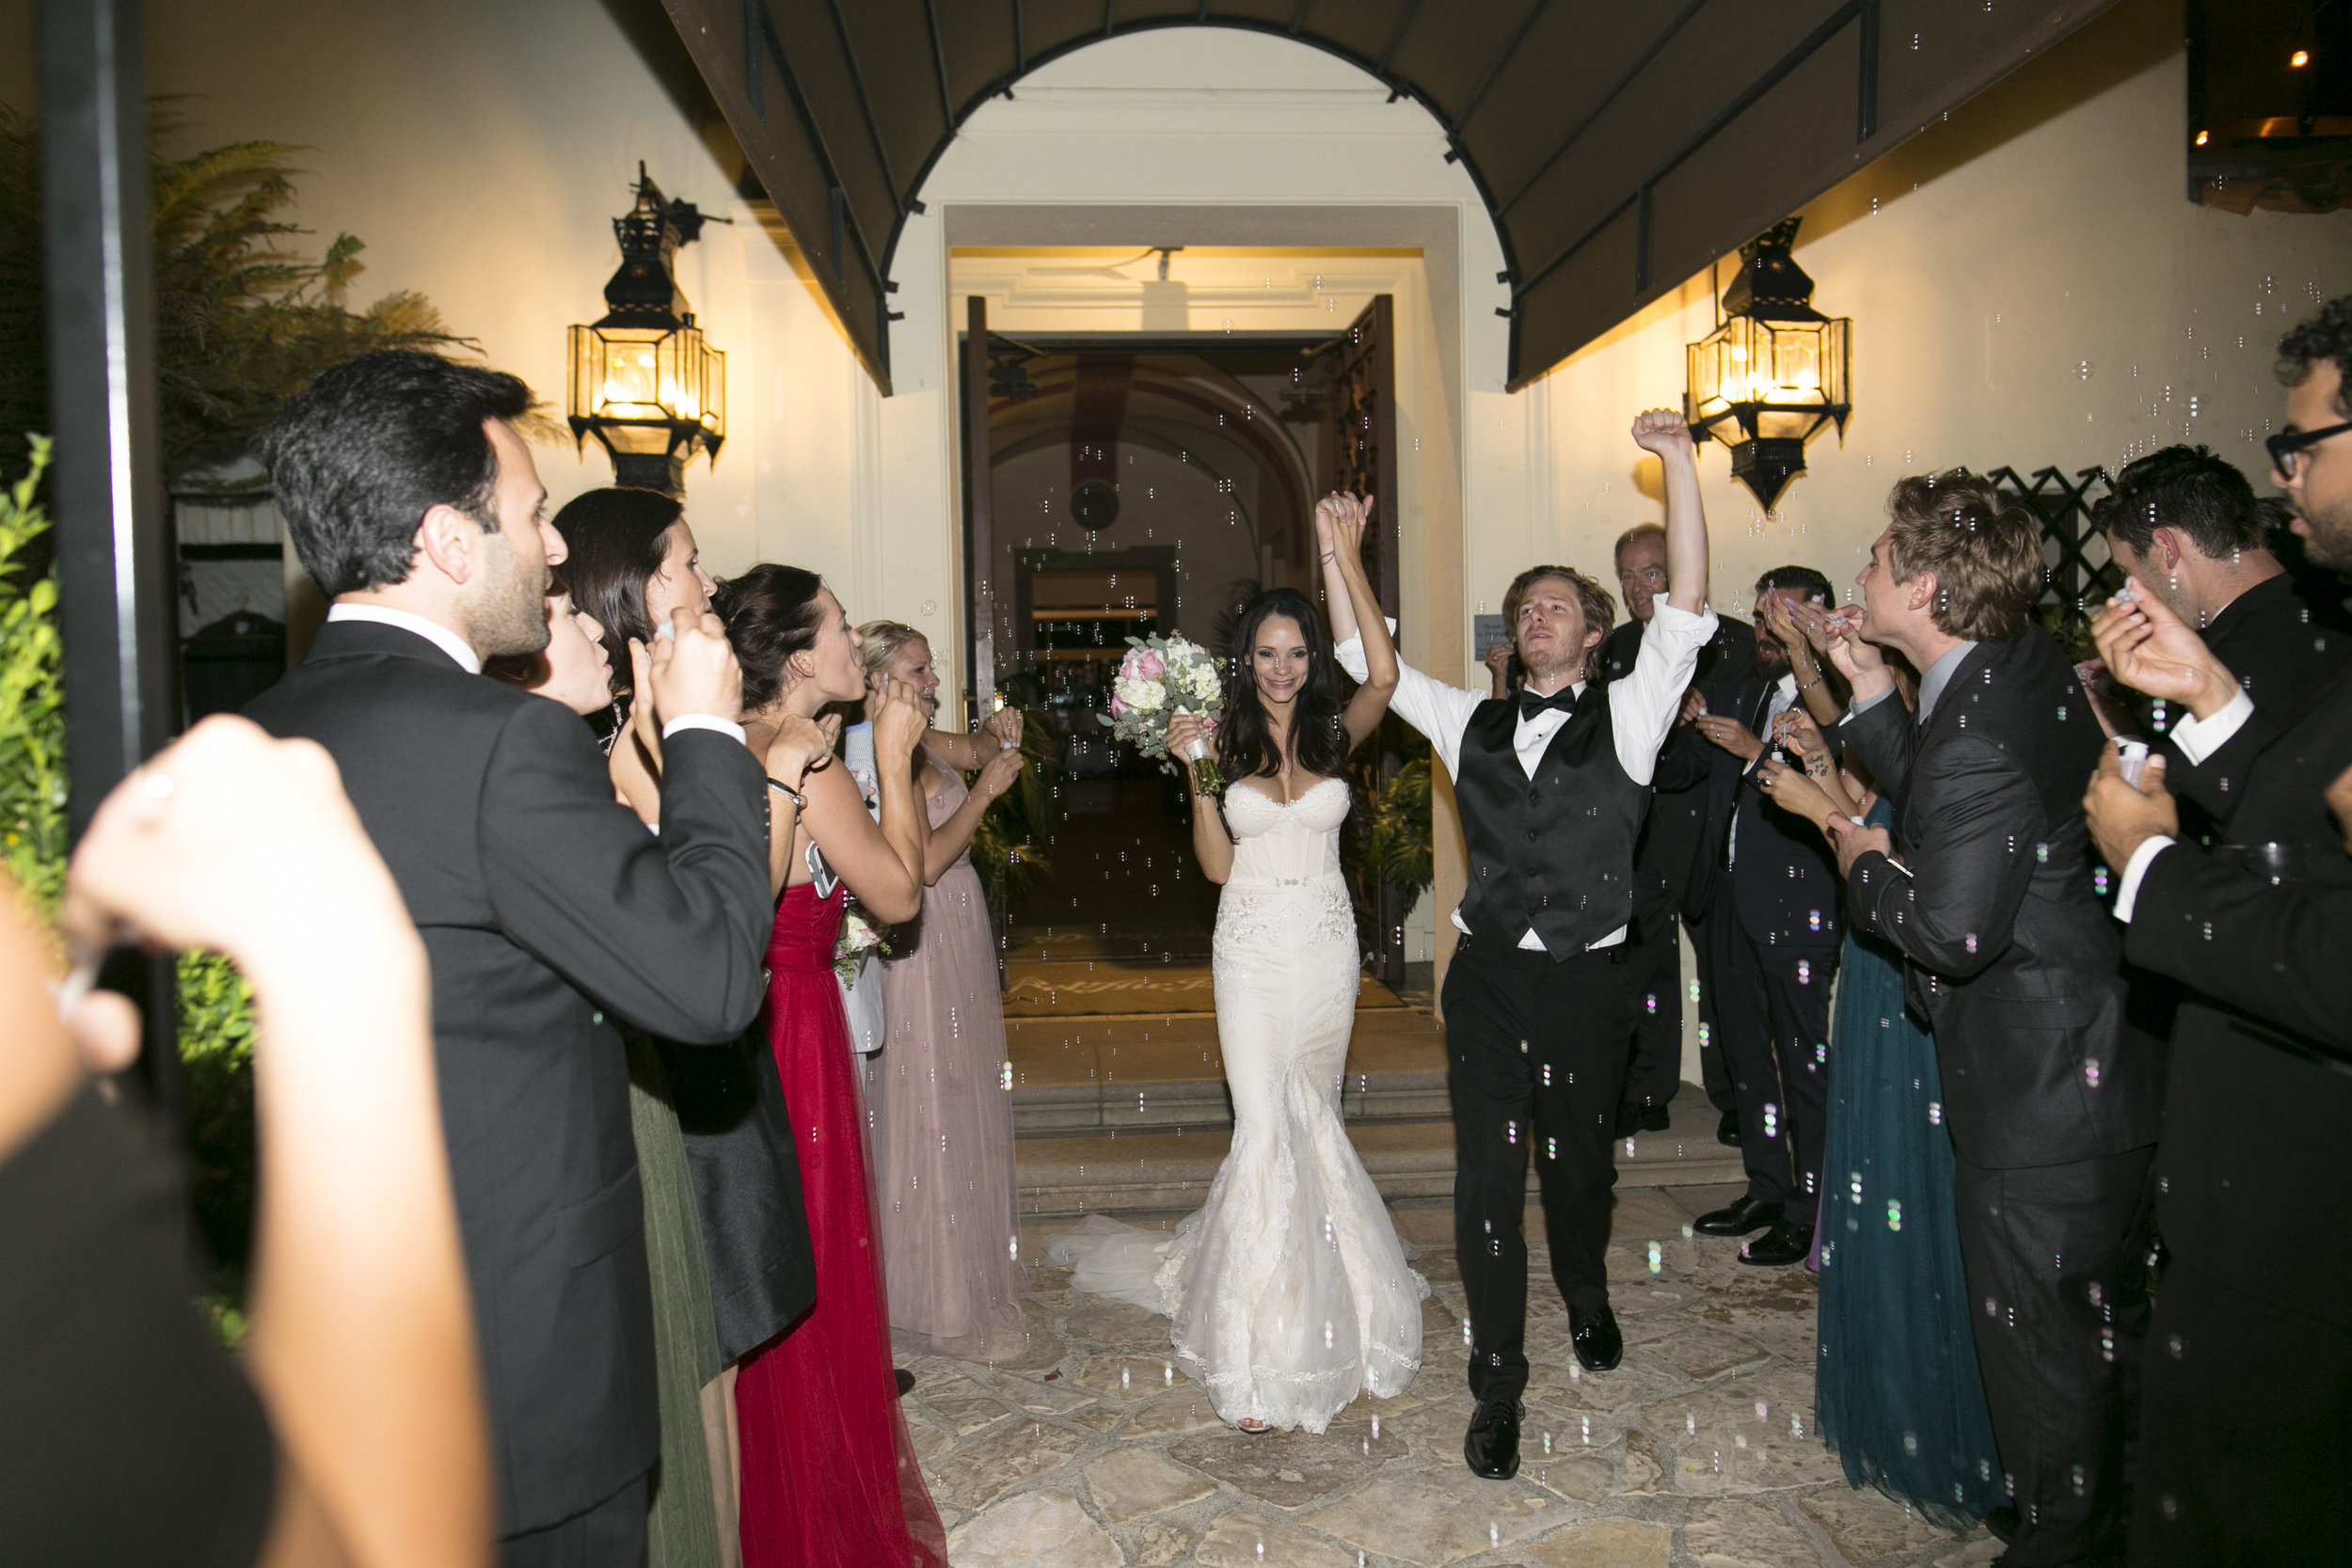 Wedding Exit Send Off - A Romantic Bel Air Bay Club Ocean-View Wedding - Southern California Wedding - Kevin Dinh Photography